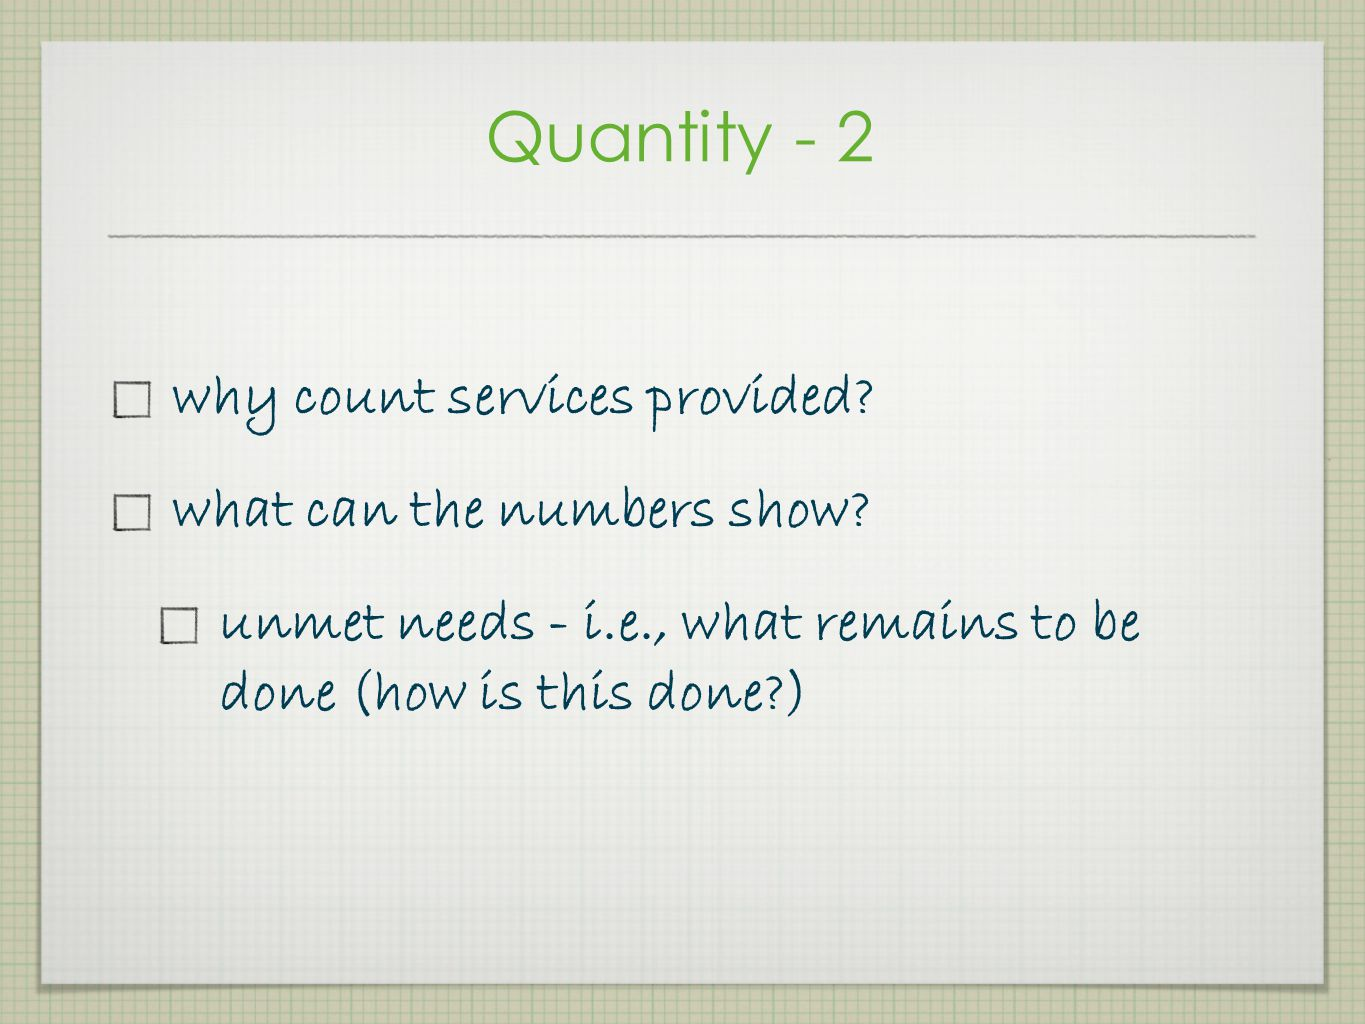 Quantity - 2 why count services provided what can the numbers show